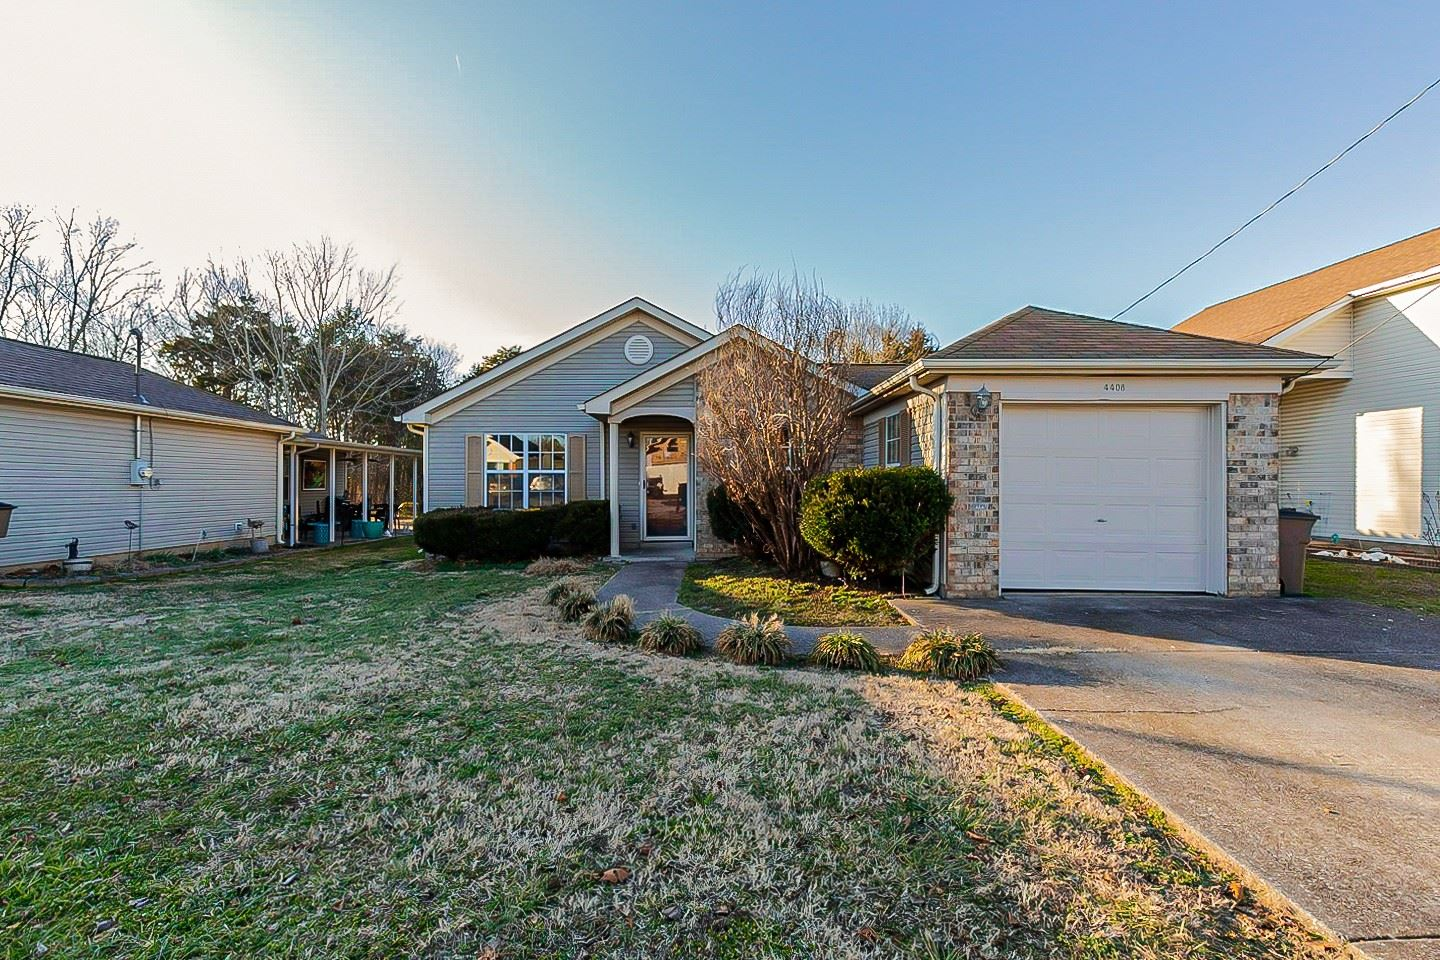 4408 Stoneview Dr, Antioch, TN 37013 - MLS#: 2222217